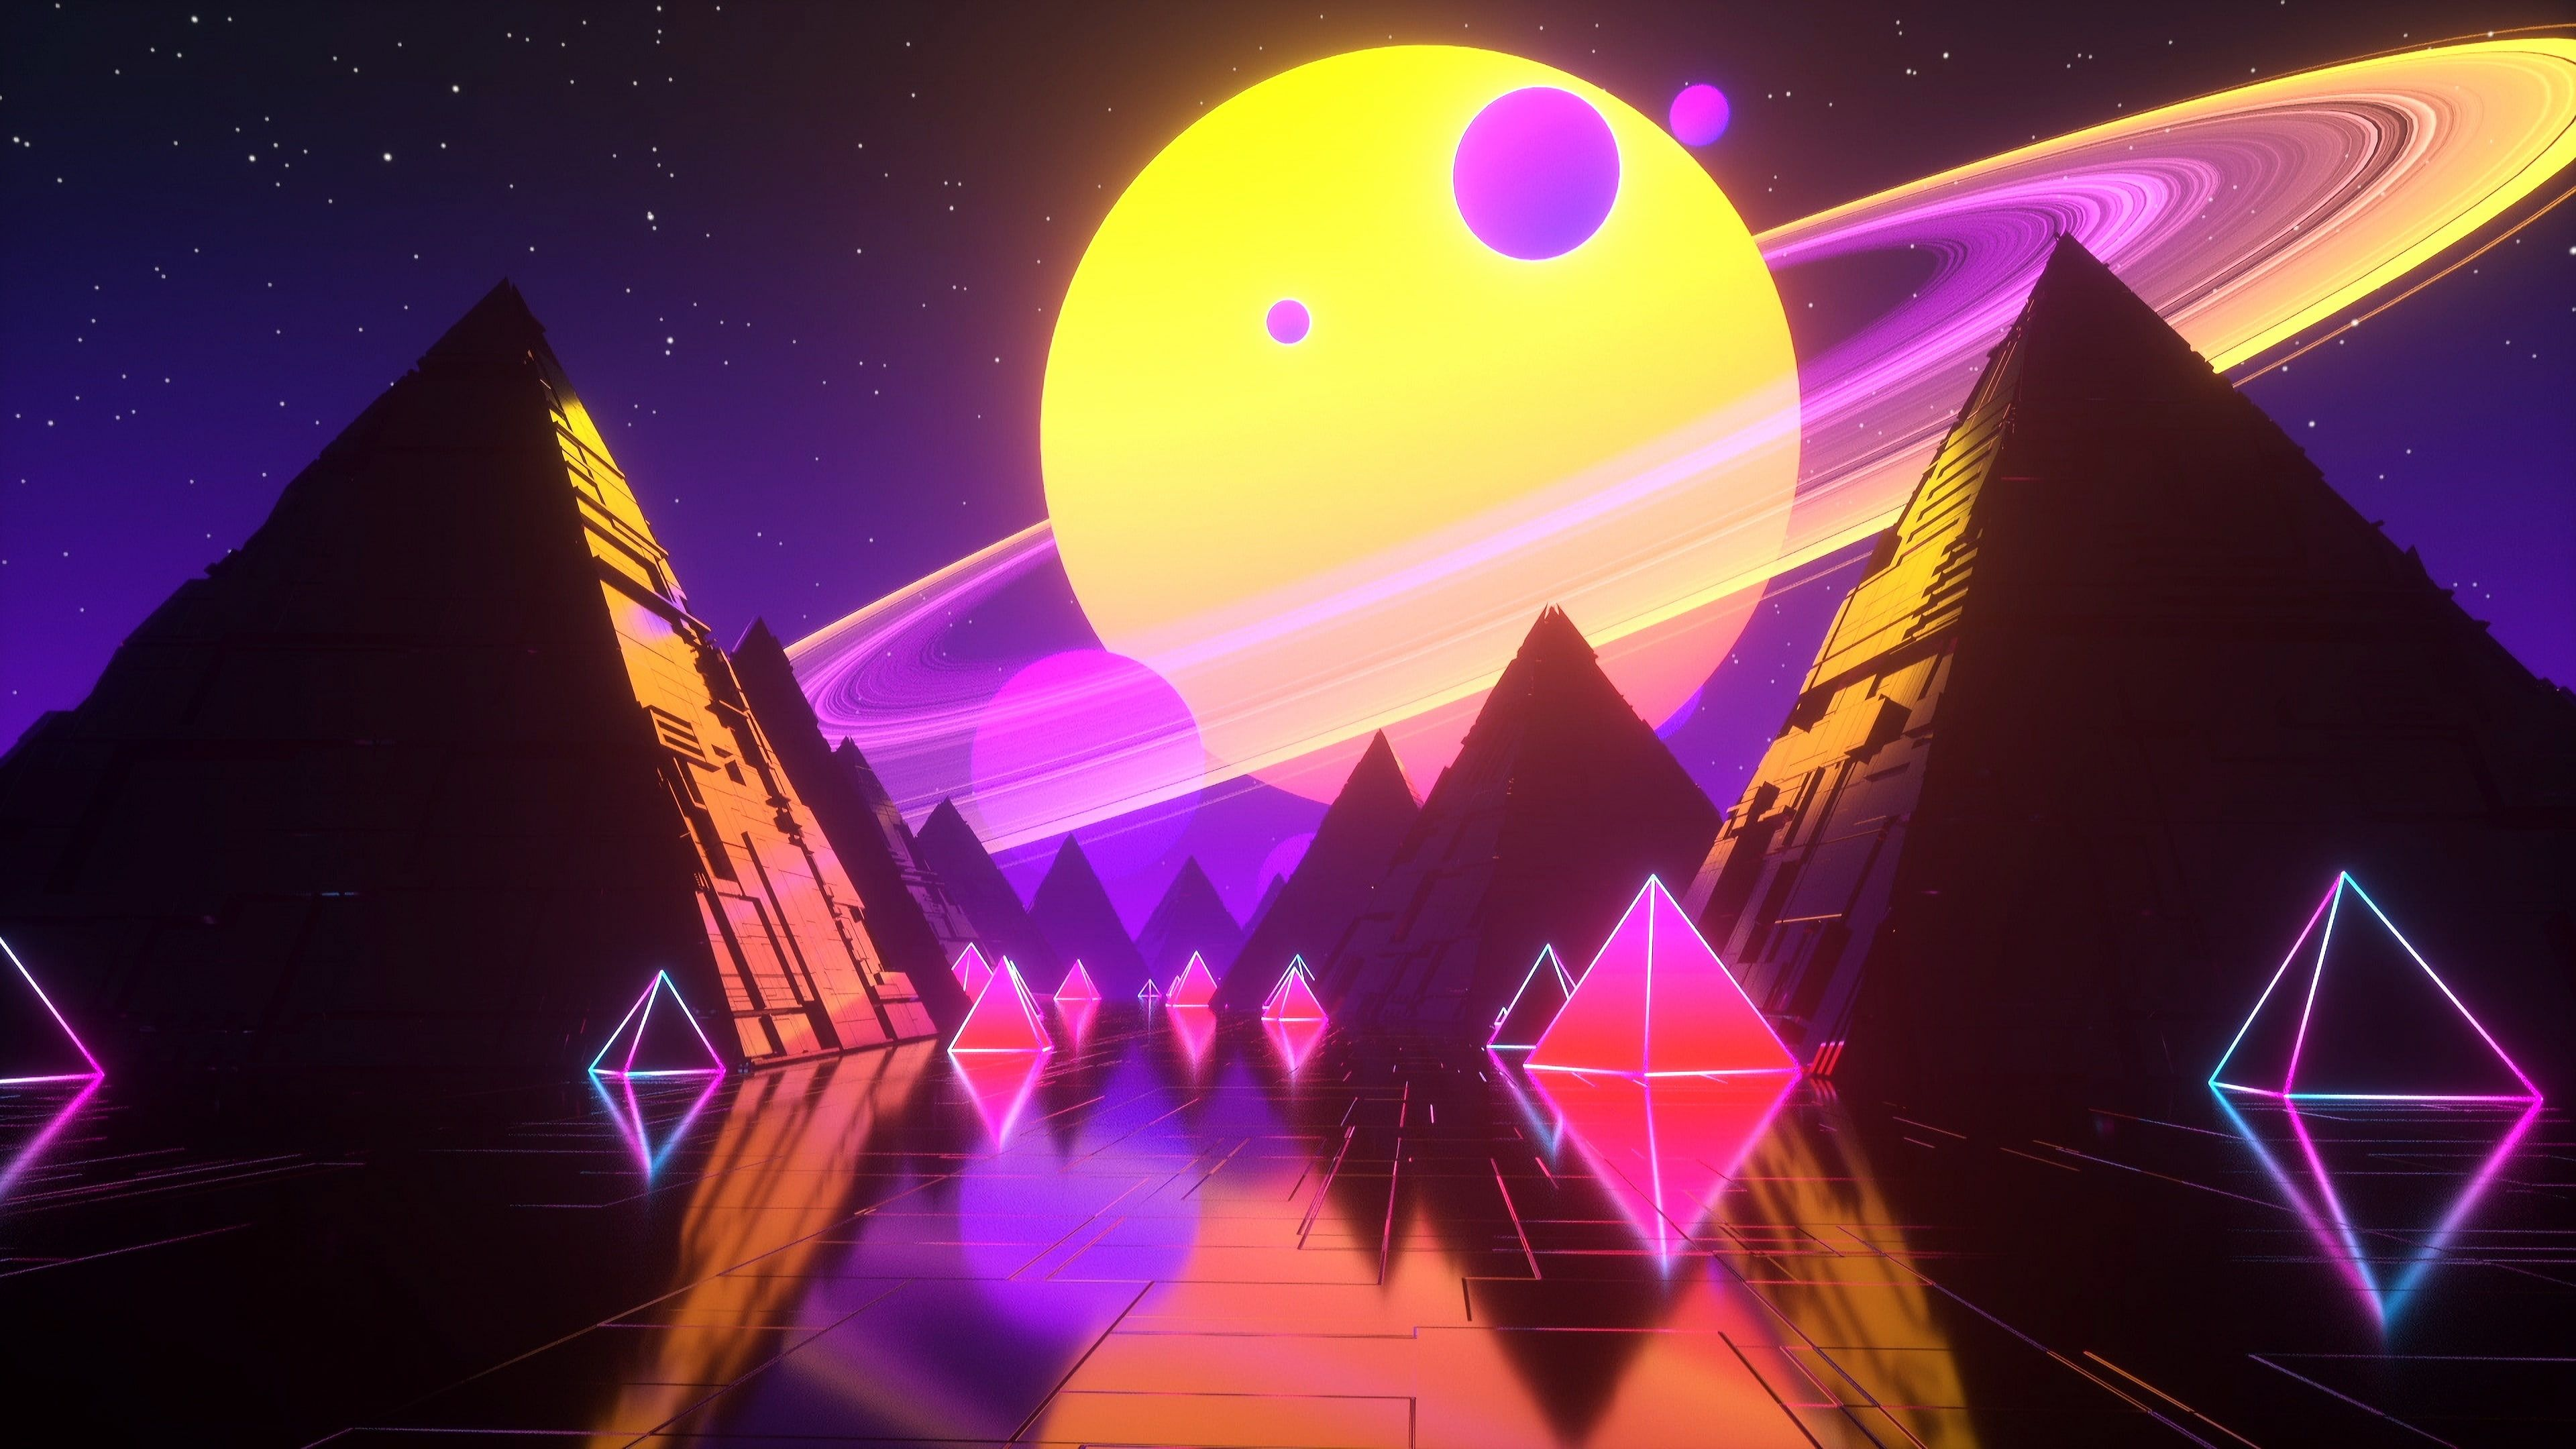 Music Stars Planet Space Pyramid Pyramid Background Neon Synth Retrowave Synthwave New Retro Wav Neon Wallpaper Wallpaper Cute Wallpaper Backgrounds